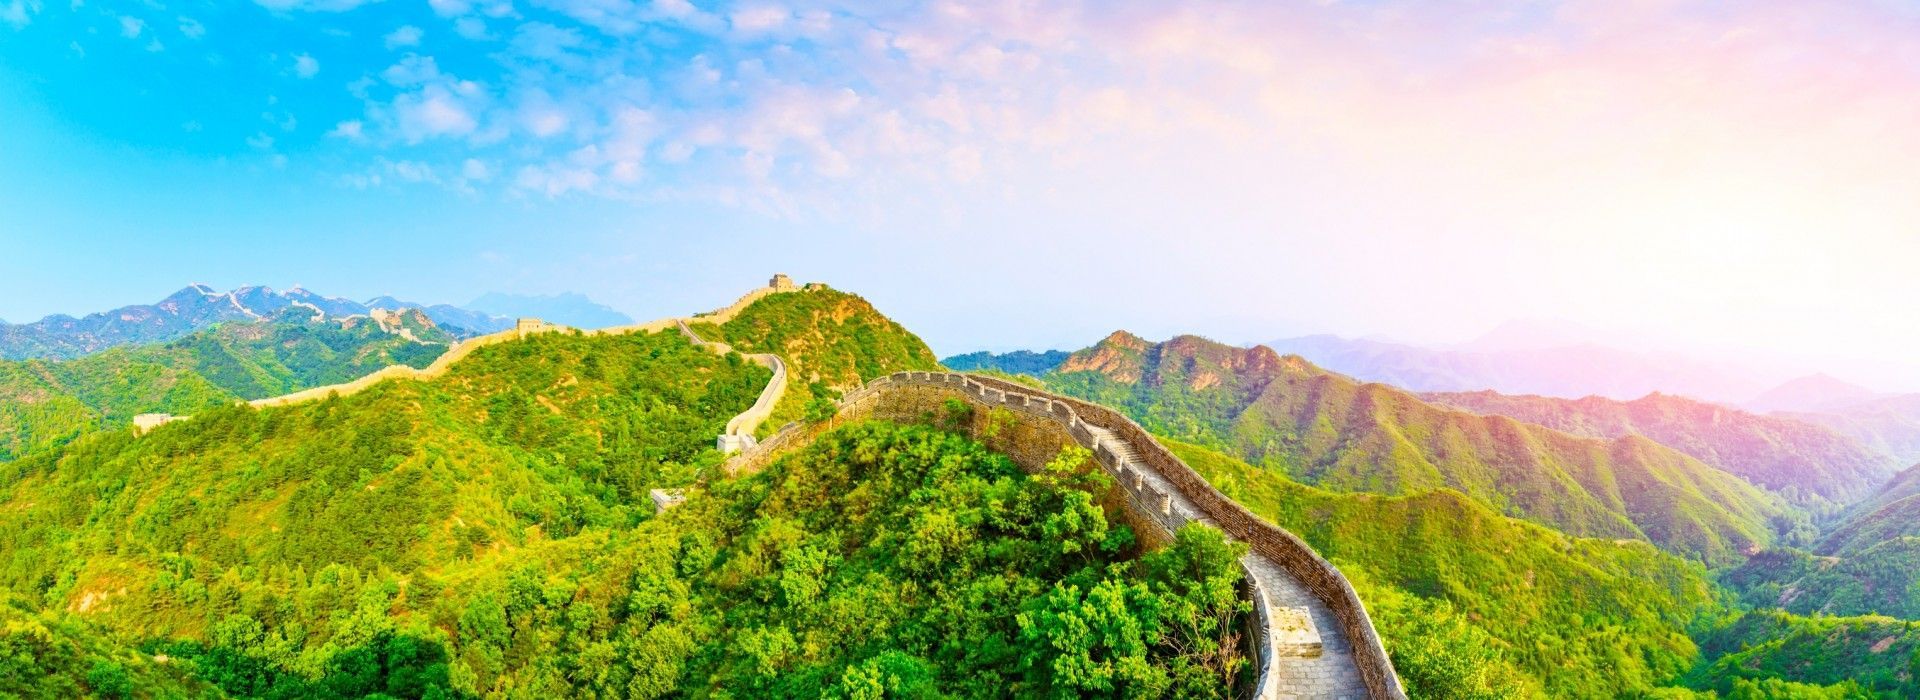 Cruise Tours in Great Wall of China